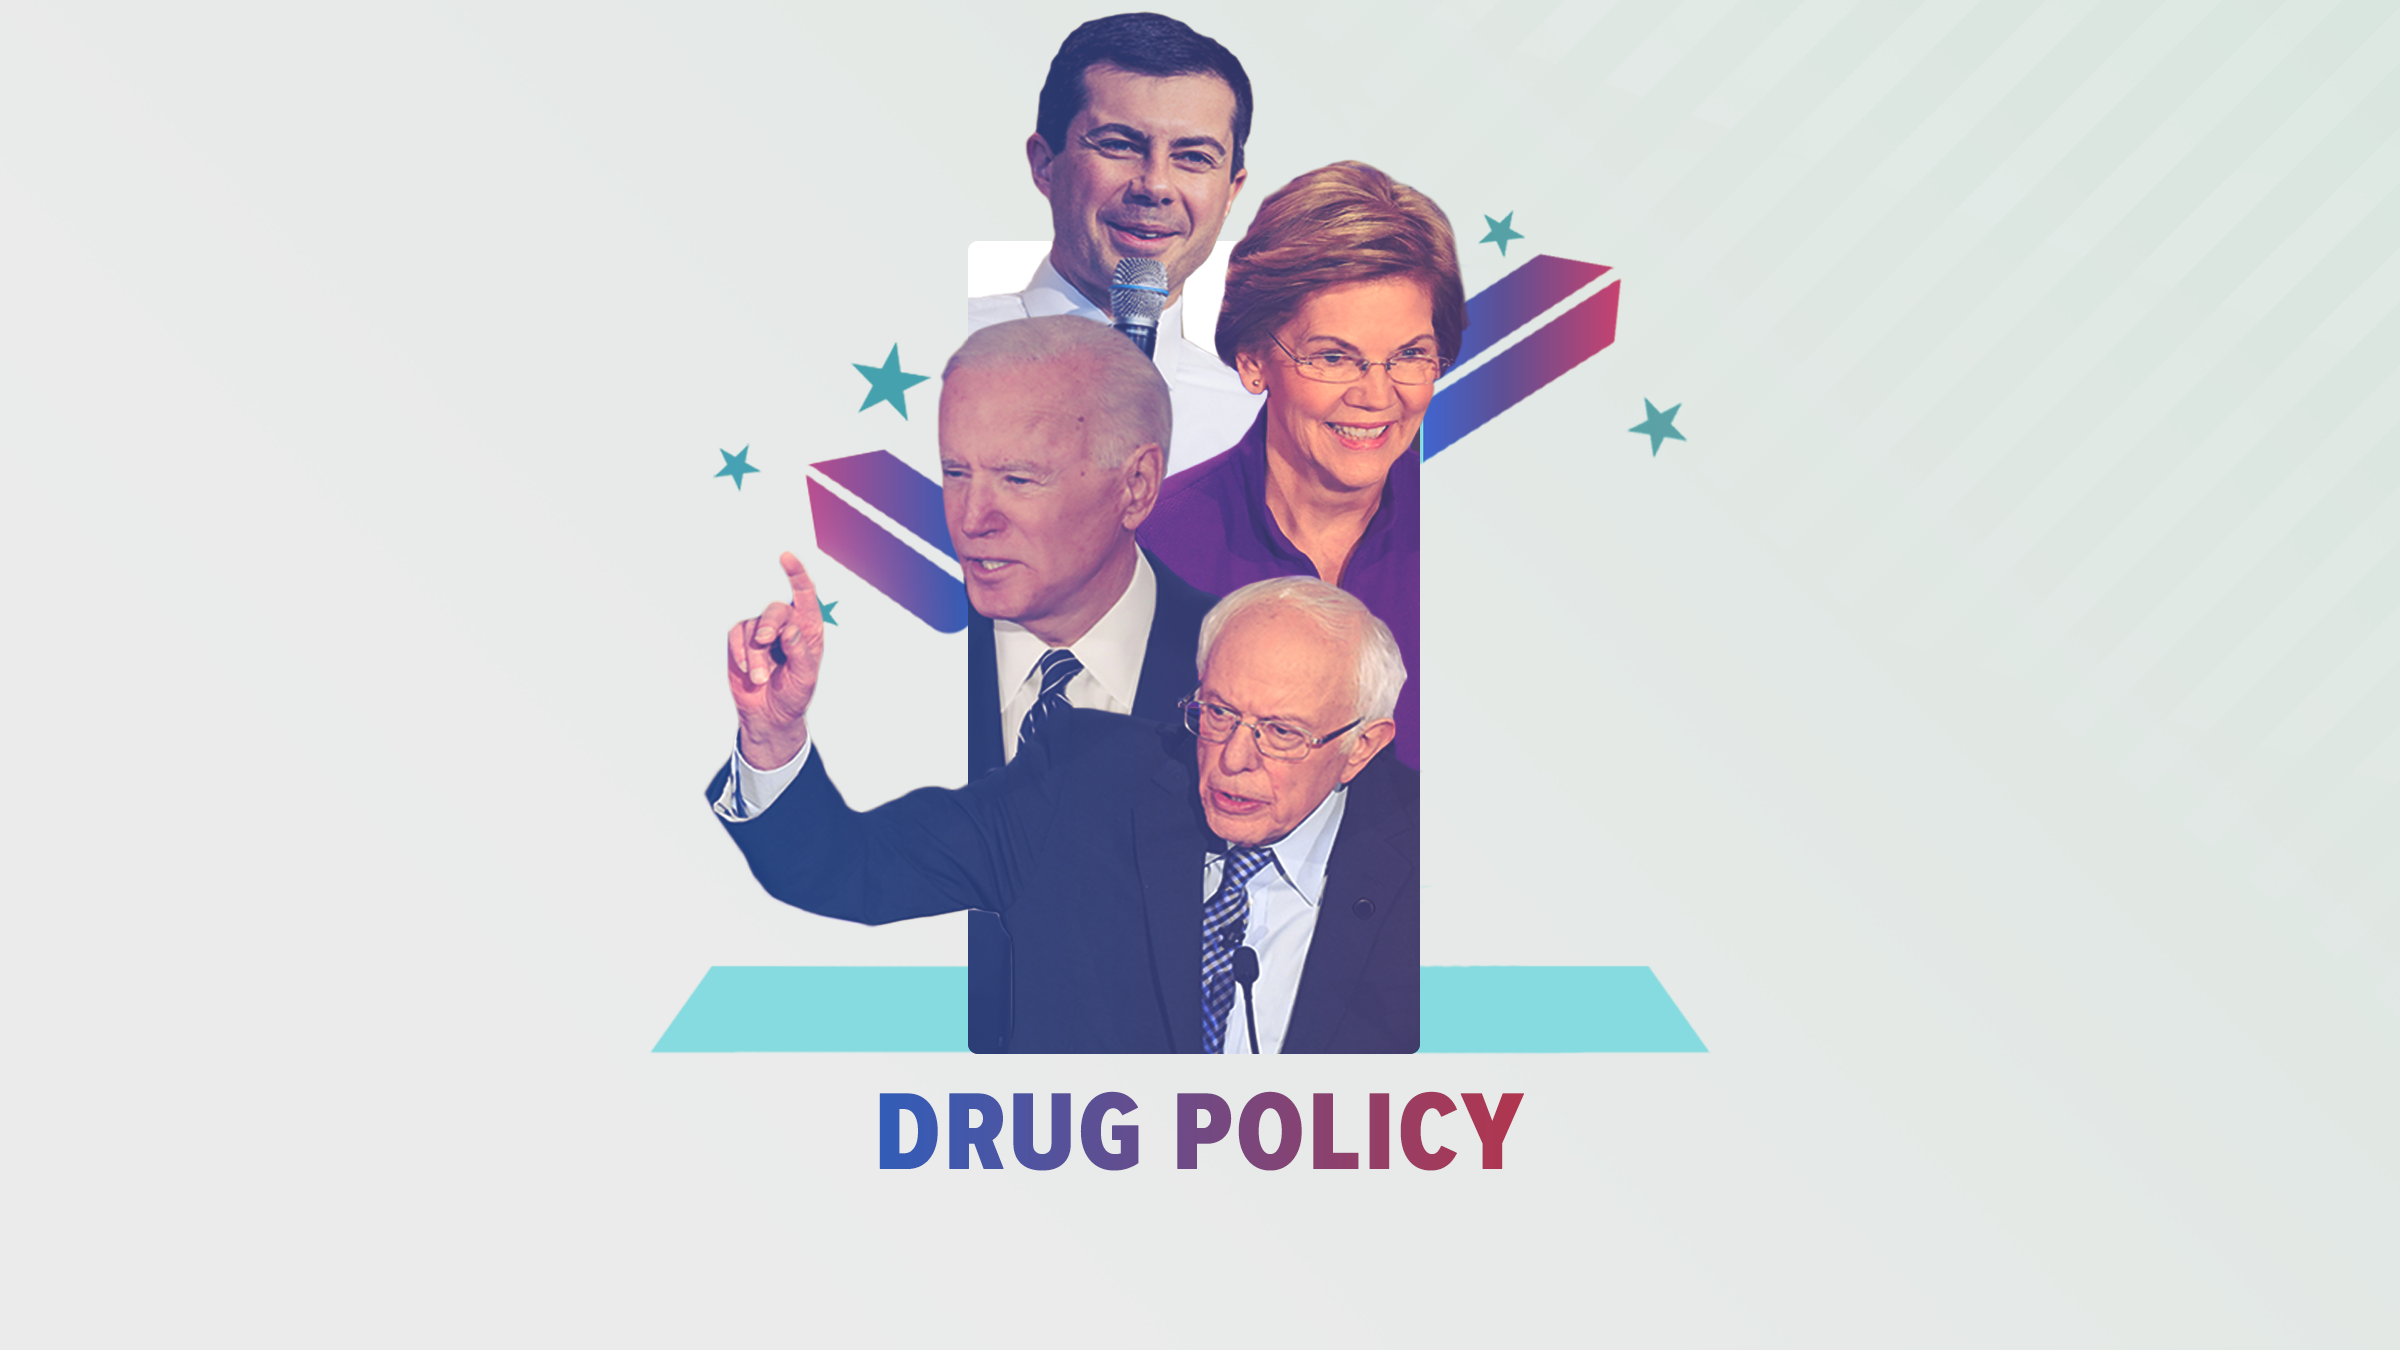 A visual guide to the 2020 presidential candidates views on drug policy